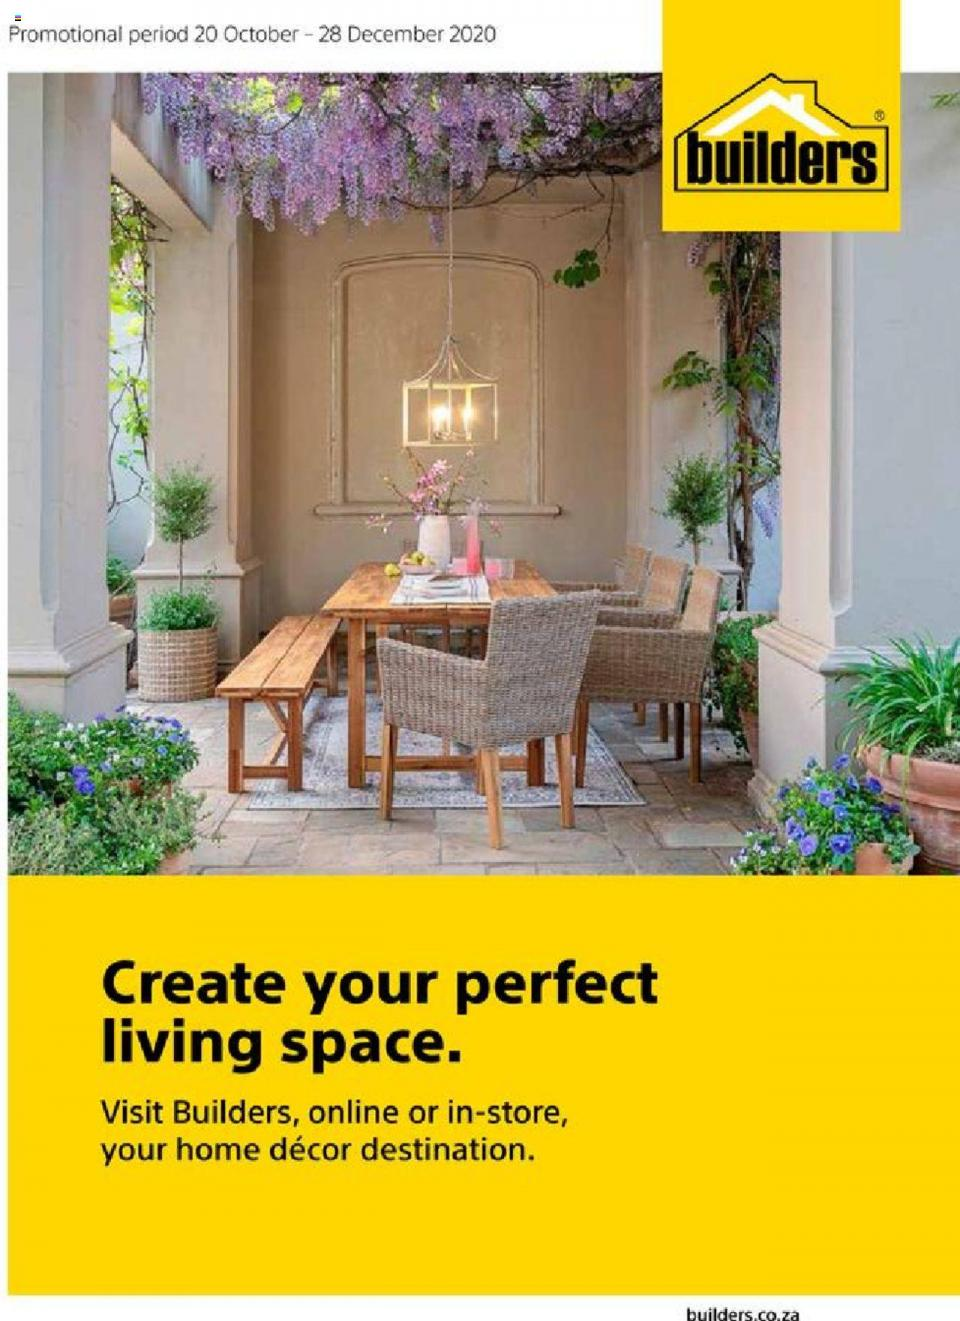 builders warehouse specials create your perfect living space 20 october 2020